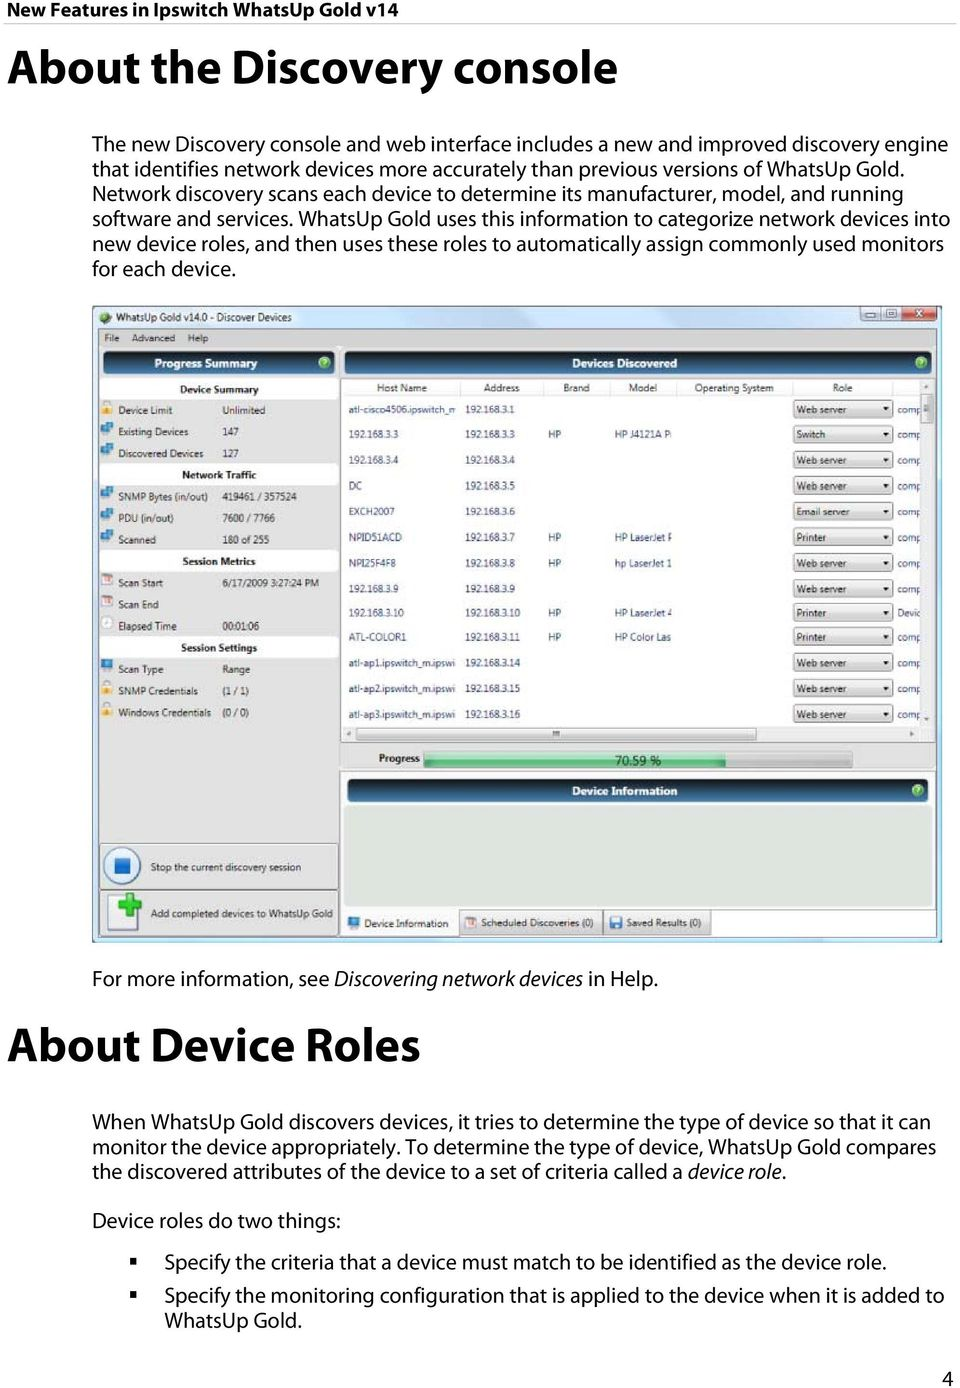 WhatsUp Gold uses this information to categorize network devices into new device roles, and then uses these roles to automatically assign commonly used monitors for each device.